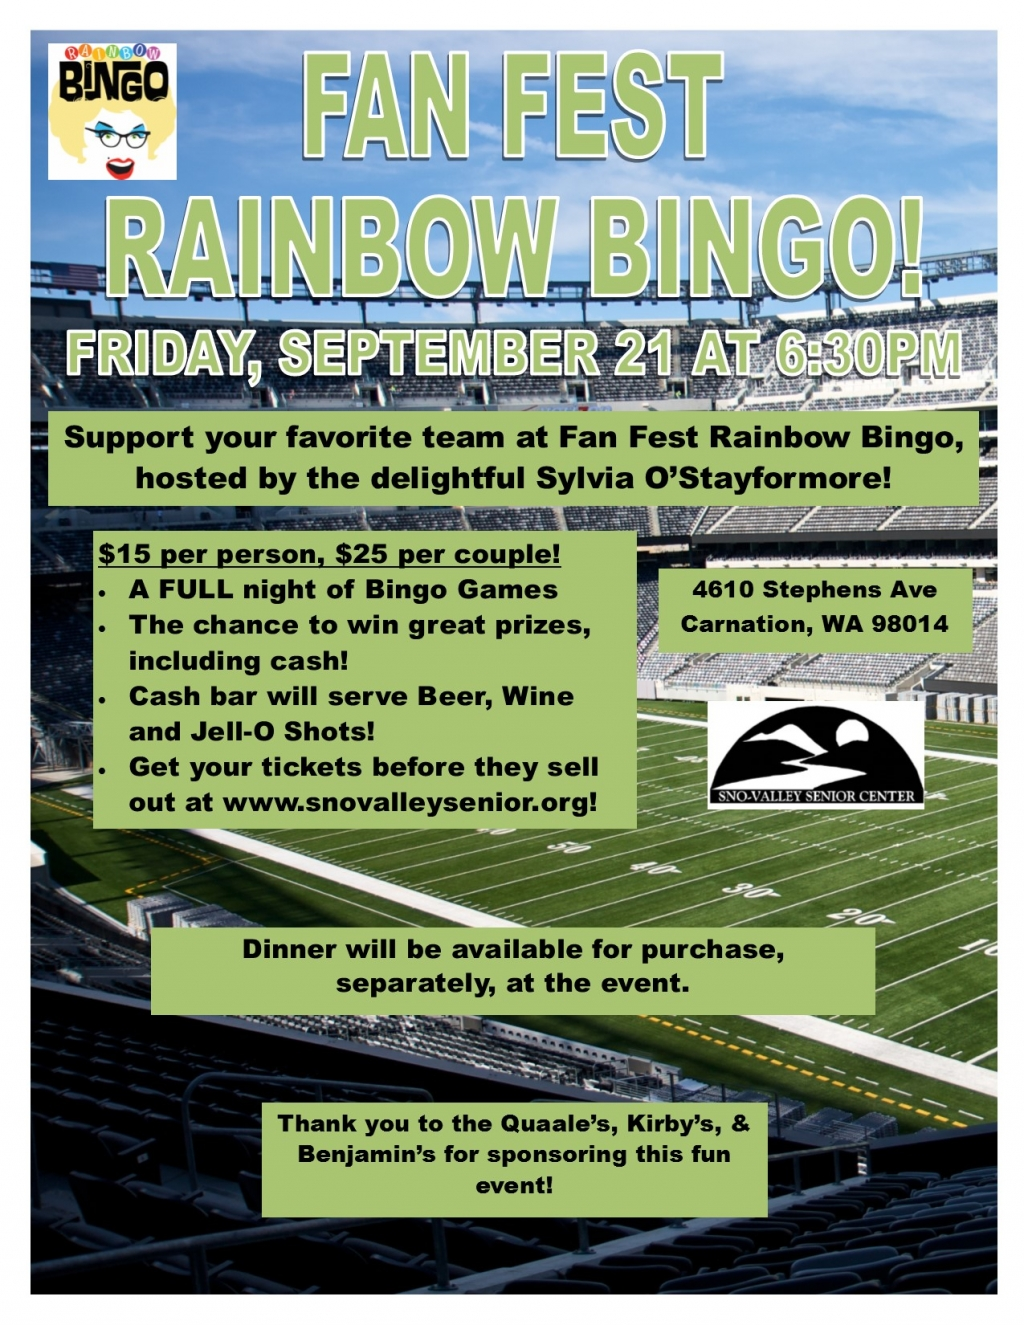 Fan Fest Rainbow Bingo